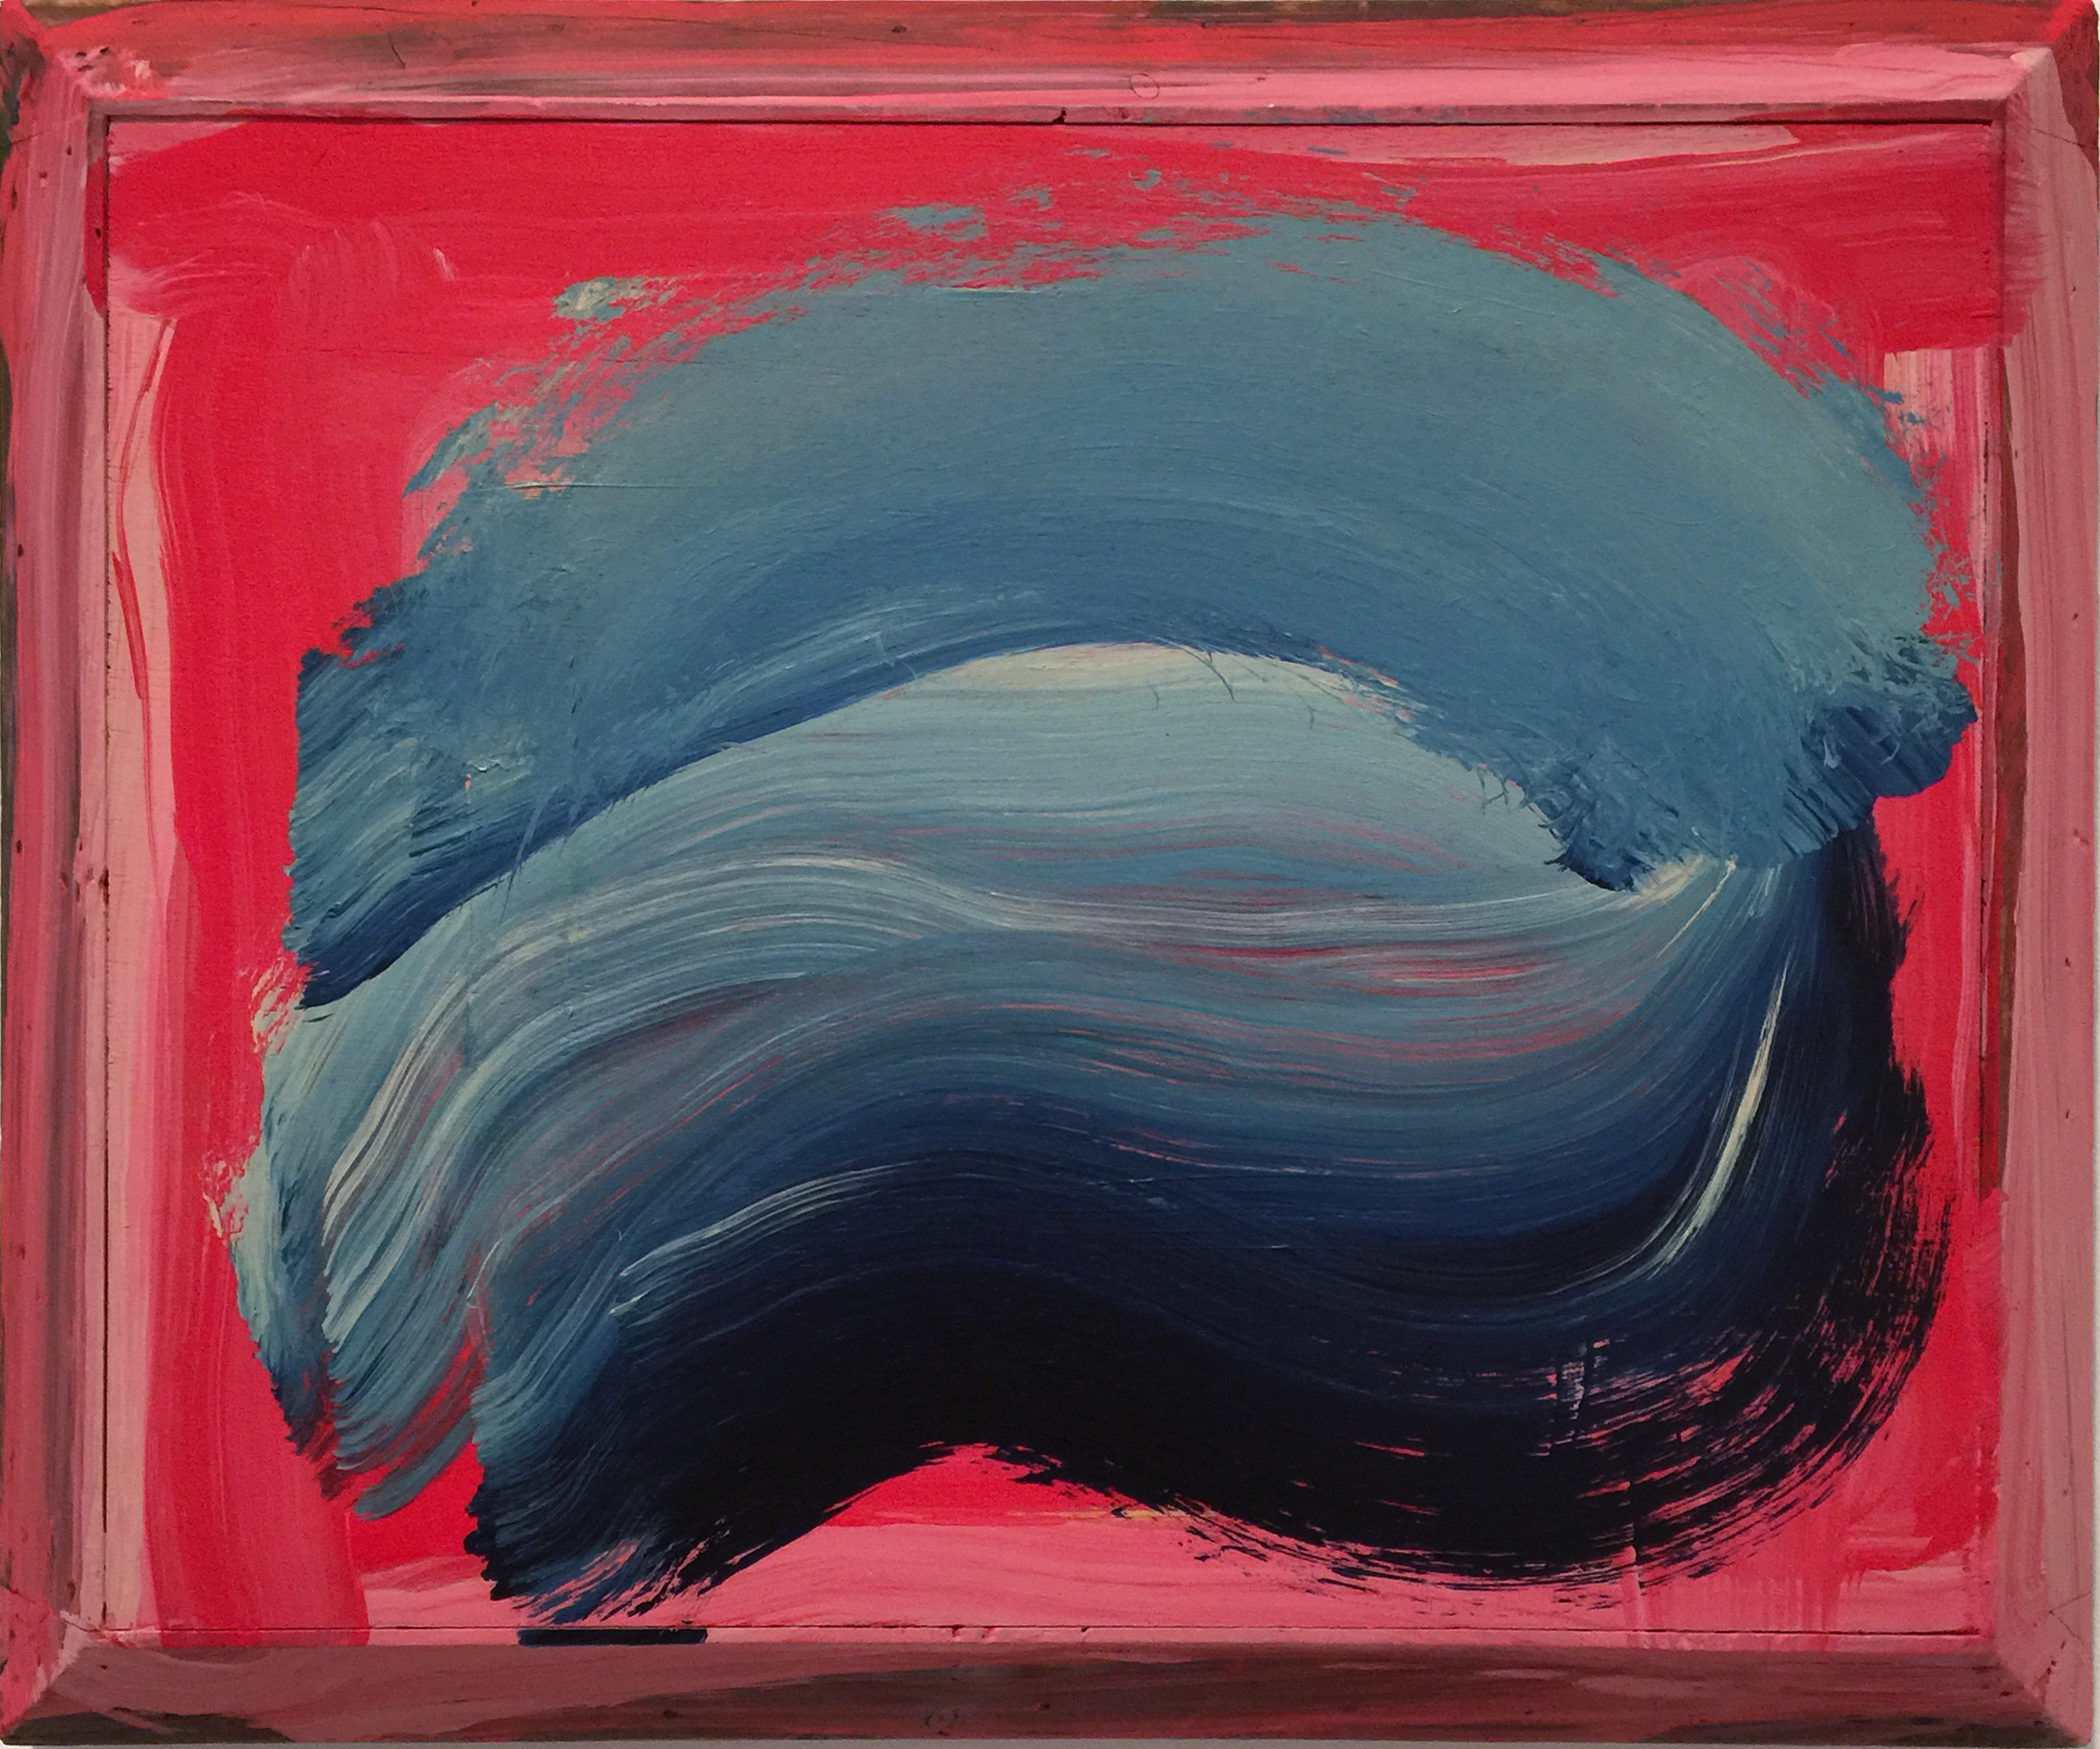 A small gem by Howard Hodgkin.